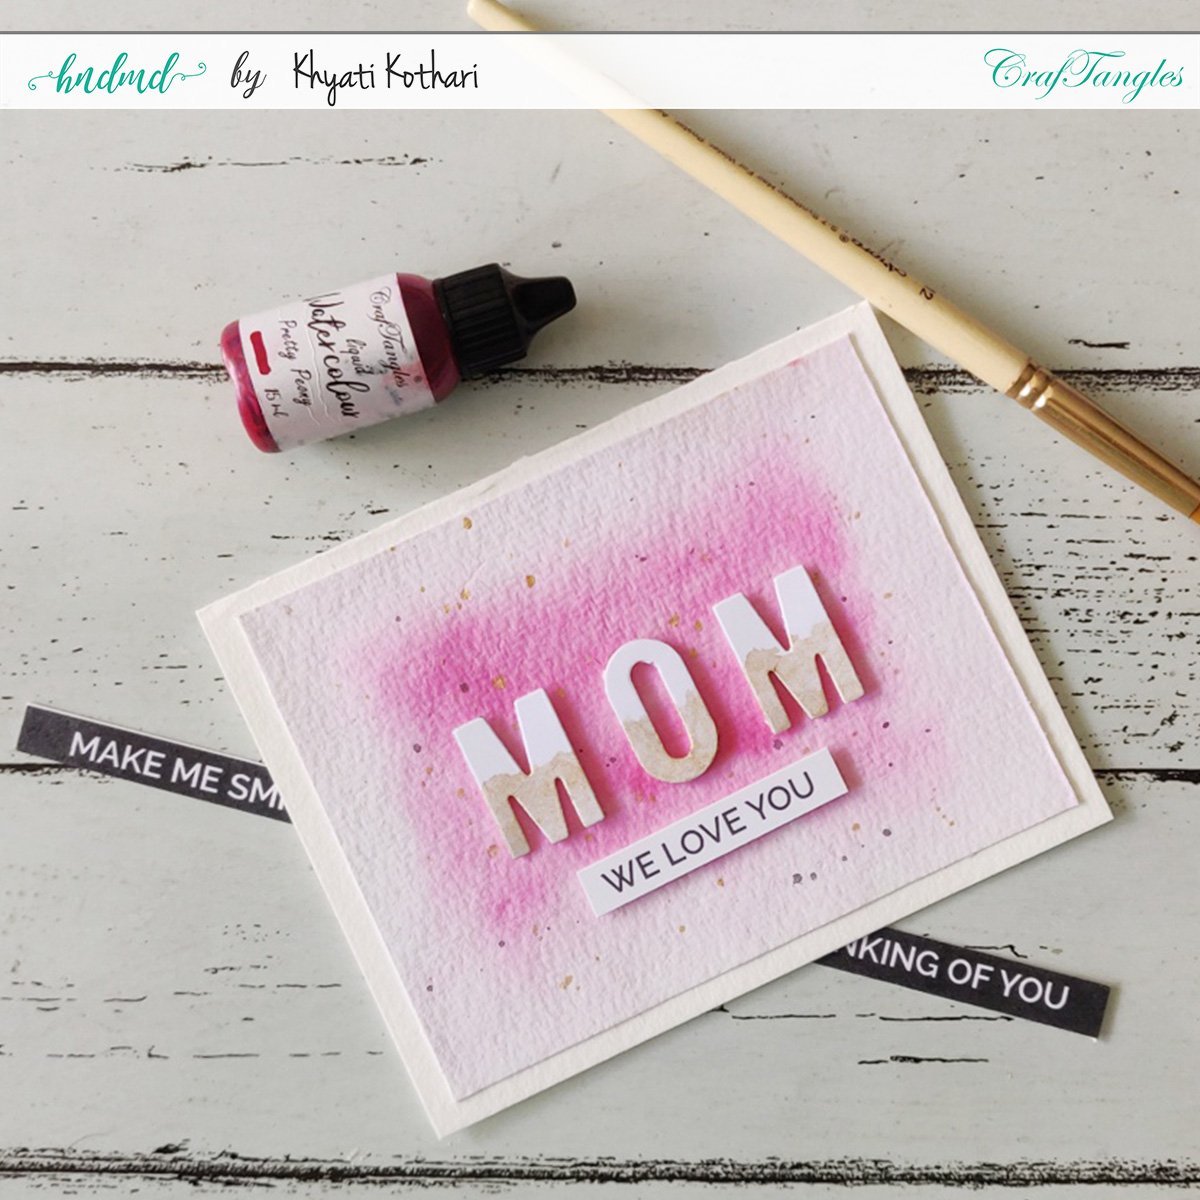 CAS Mothers Day Card 2020 - Cardmaking idea 3